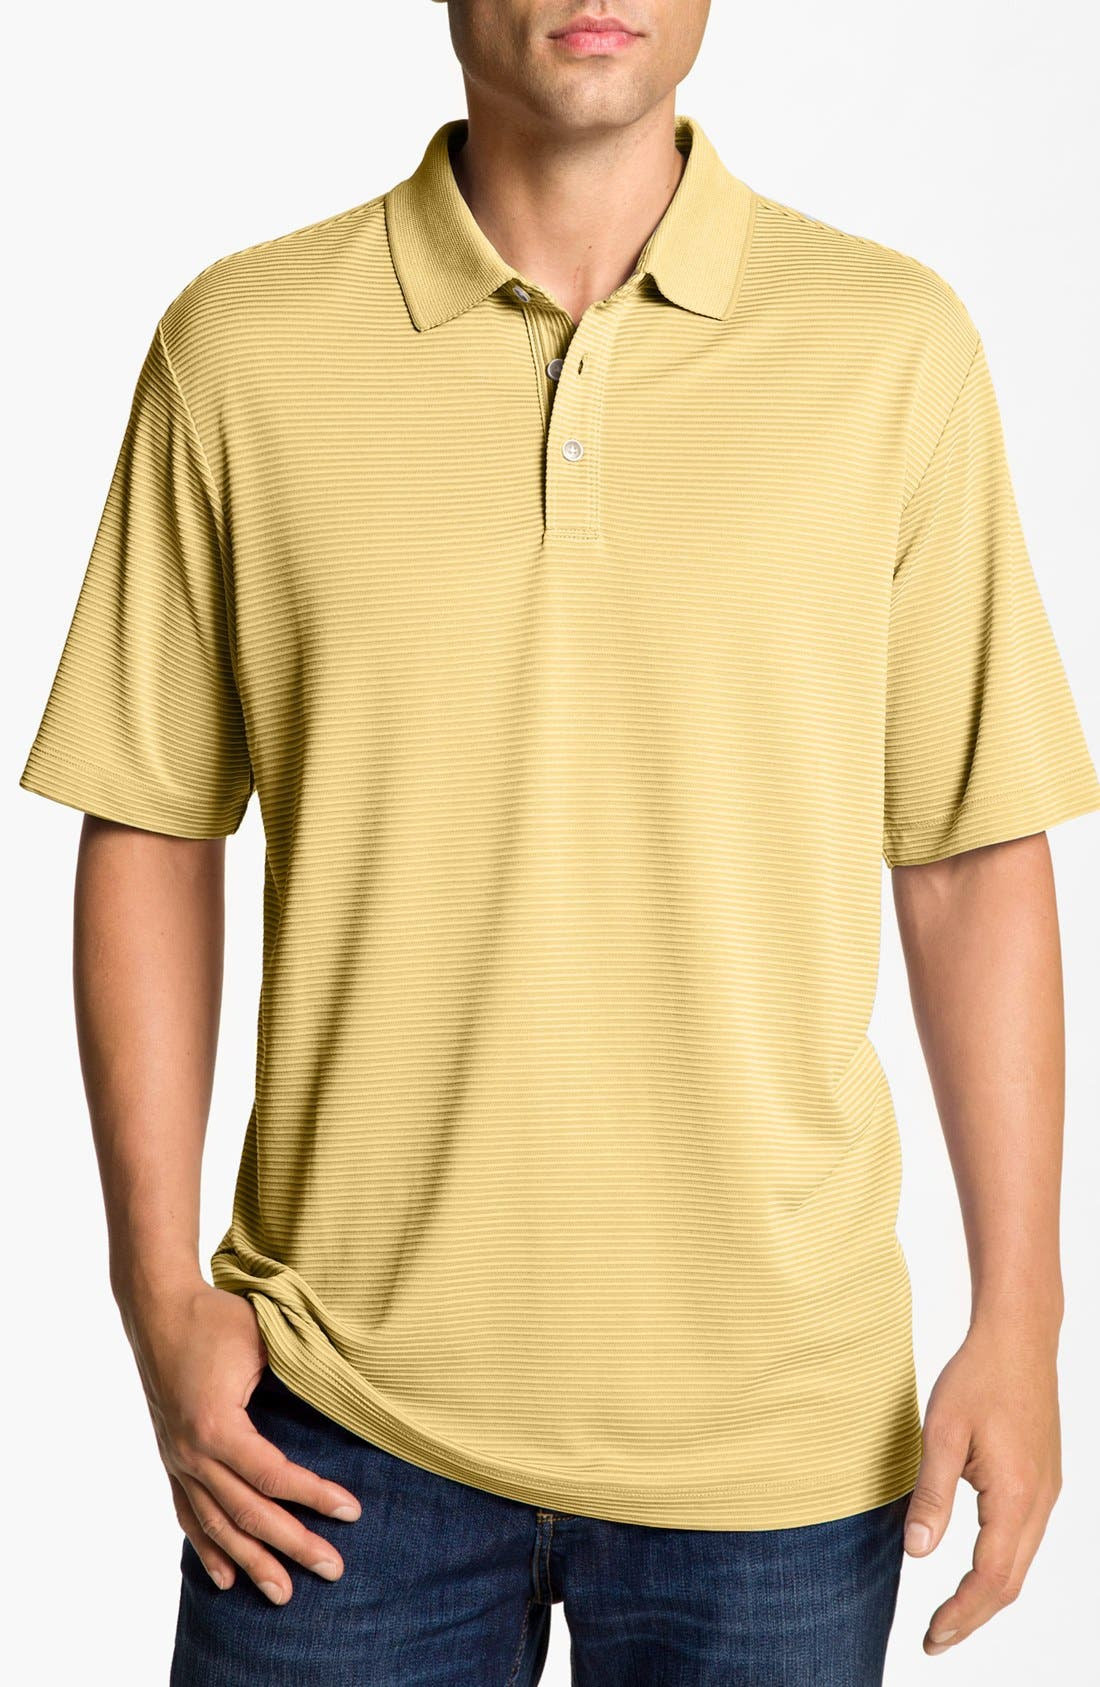 Main Image - Tommy Bahama 'Superfecta' Stripe Polo